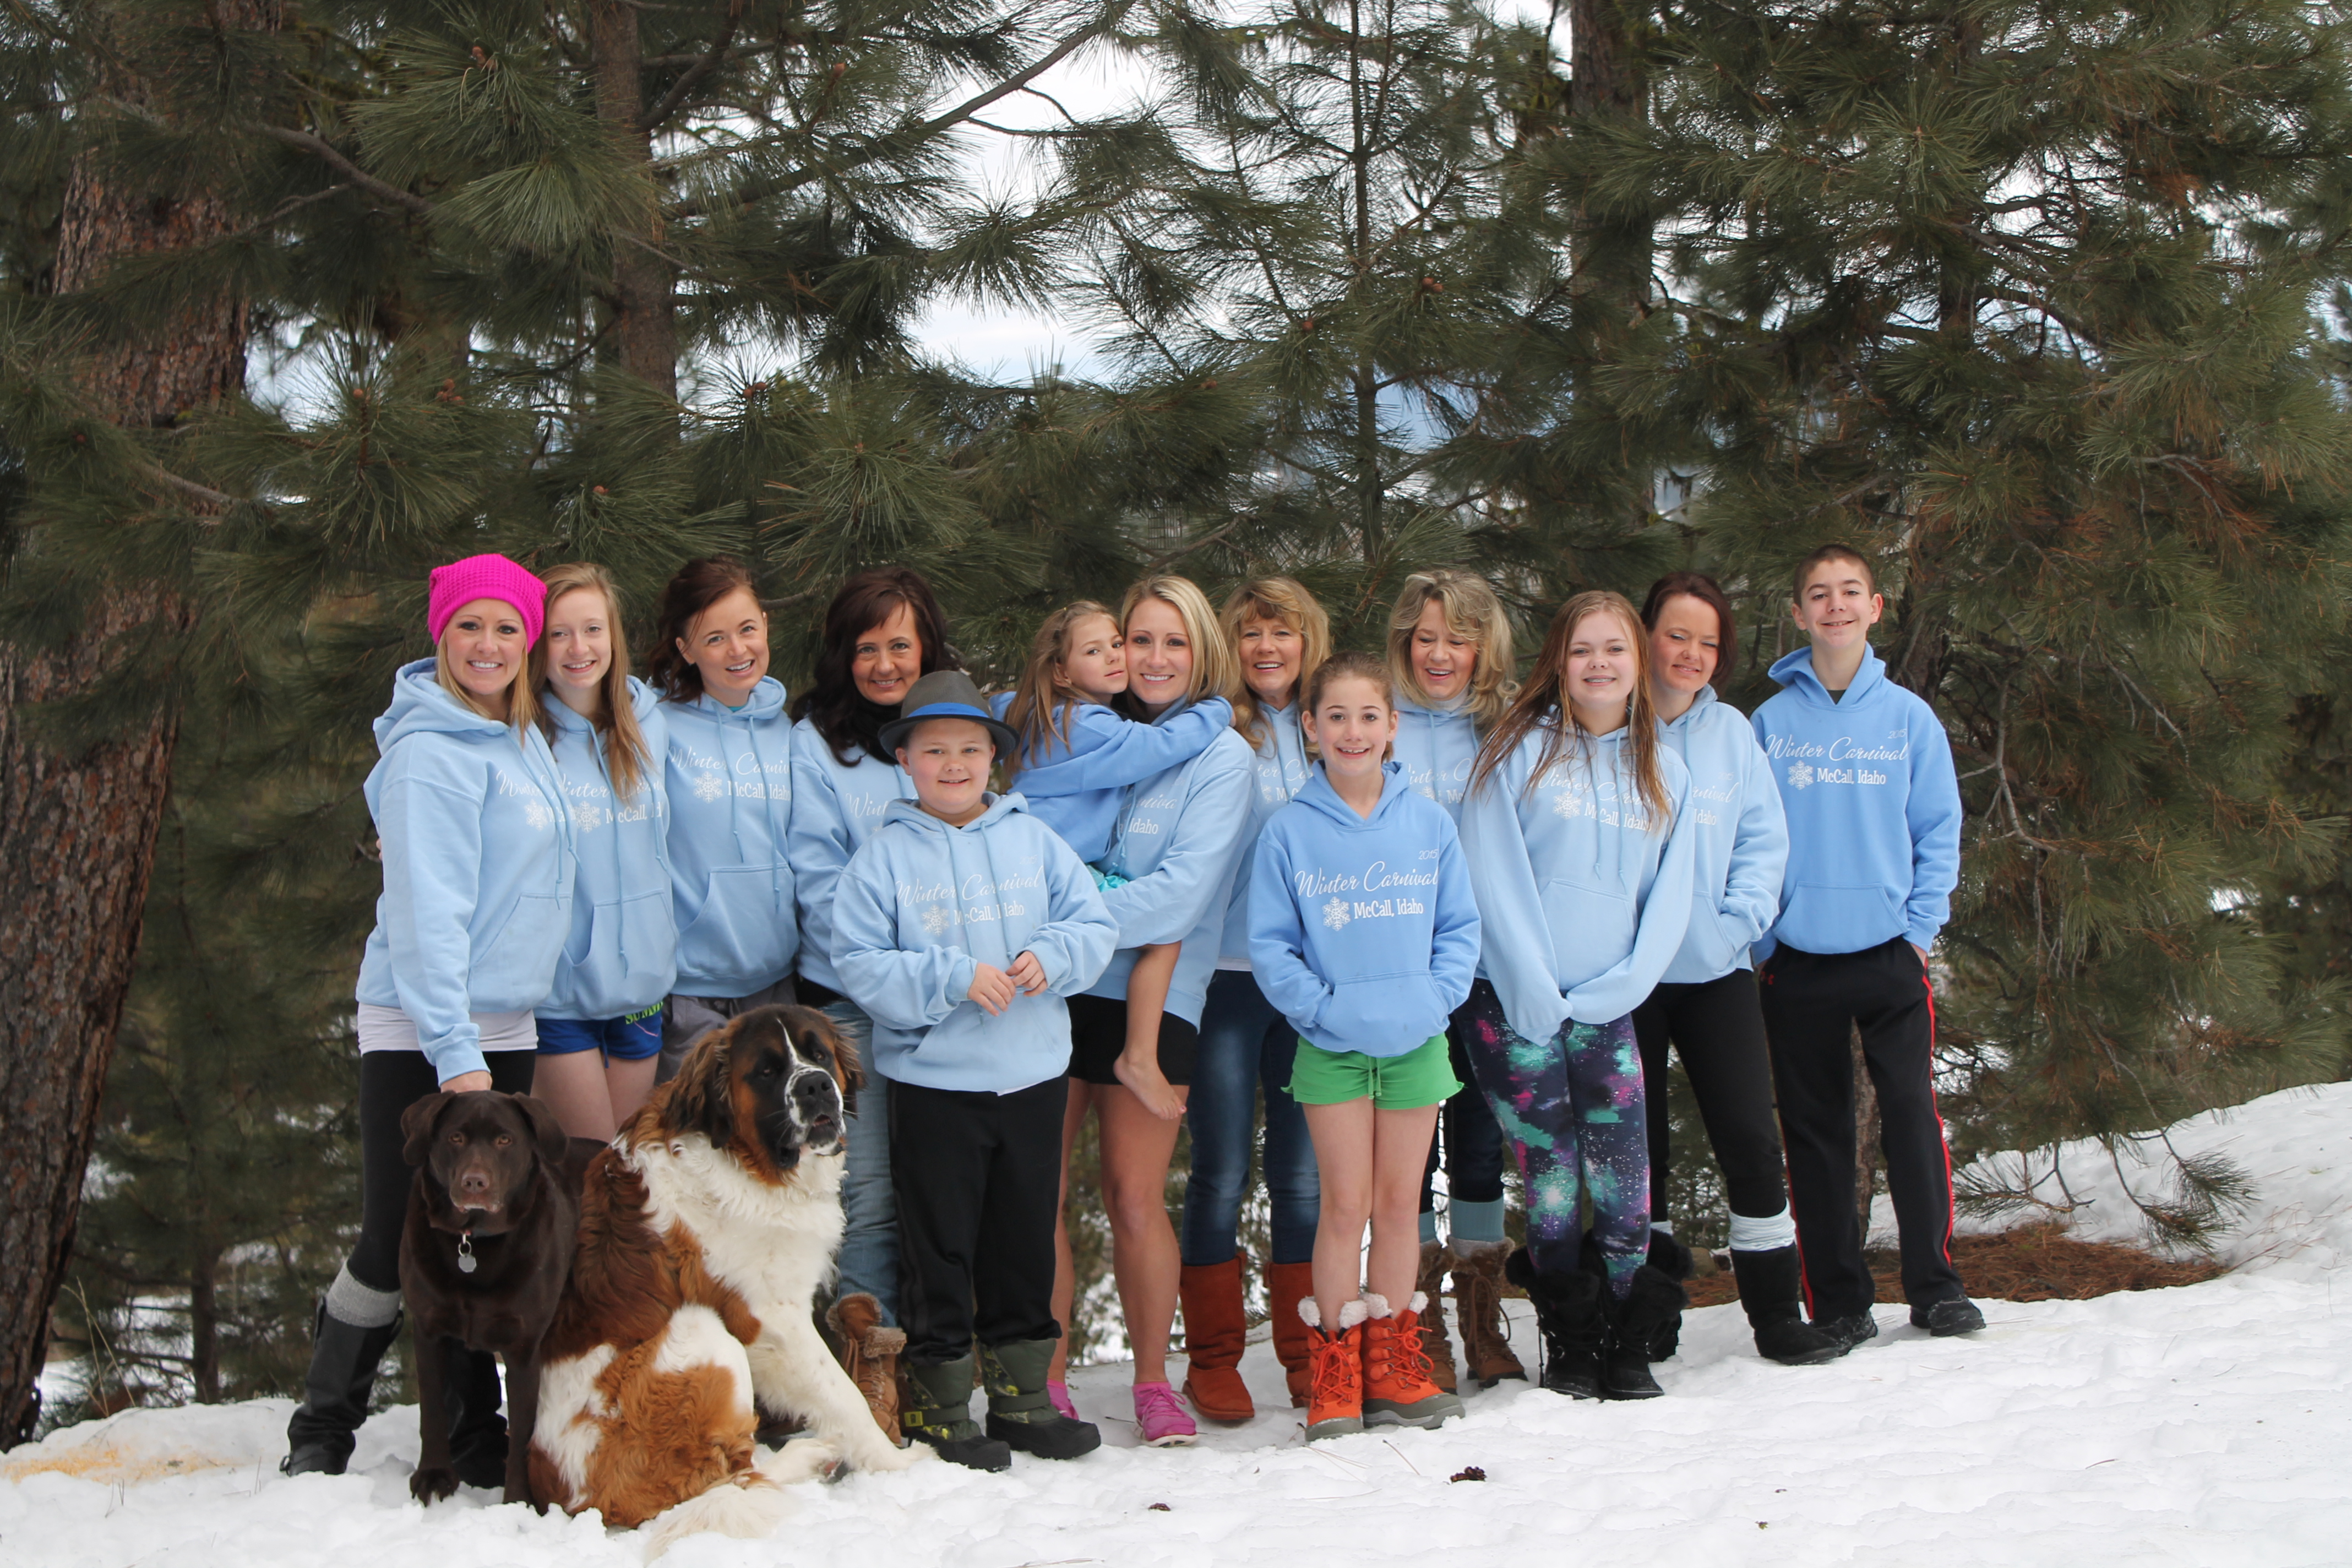 Design your own t-shirt for dogs - Winter Carnival 2015 Girls Week End And Kids And Dogs T Shirt Photo